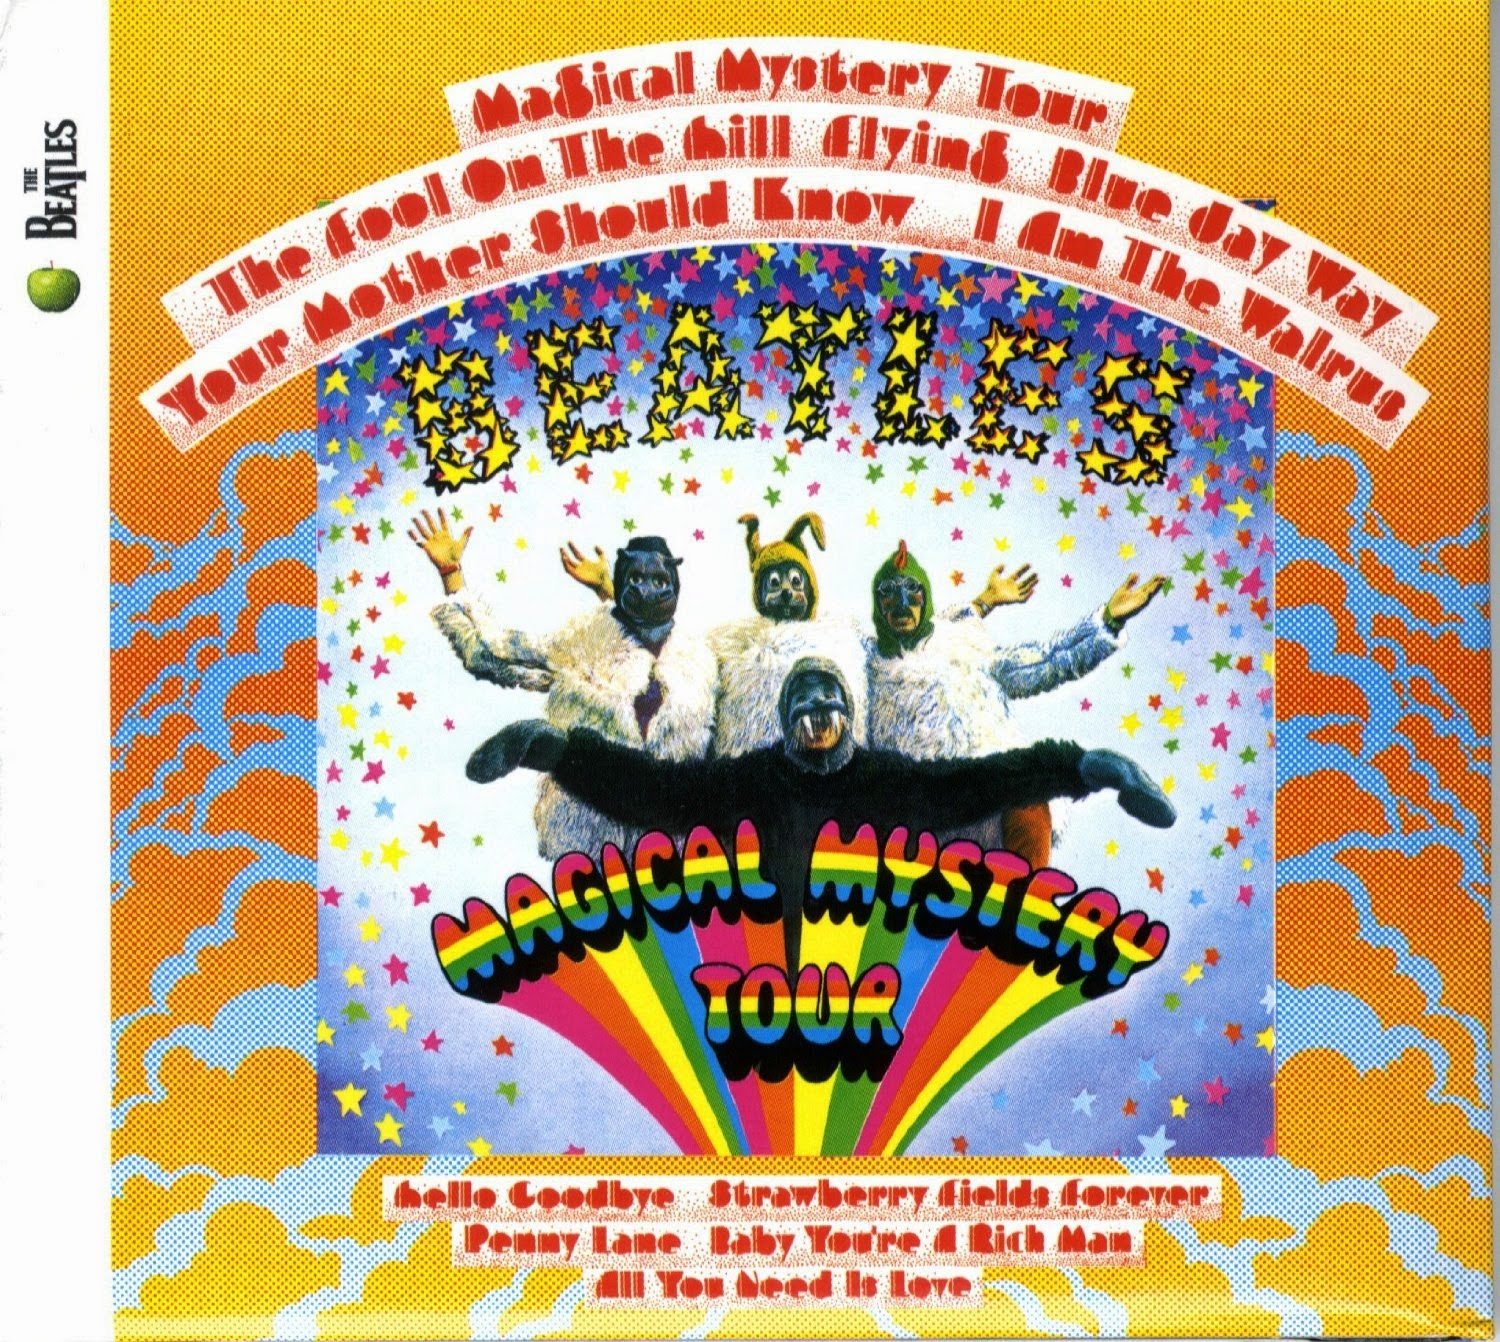 Magical Mystery Tour Live